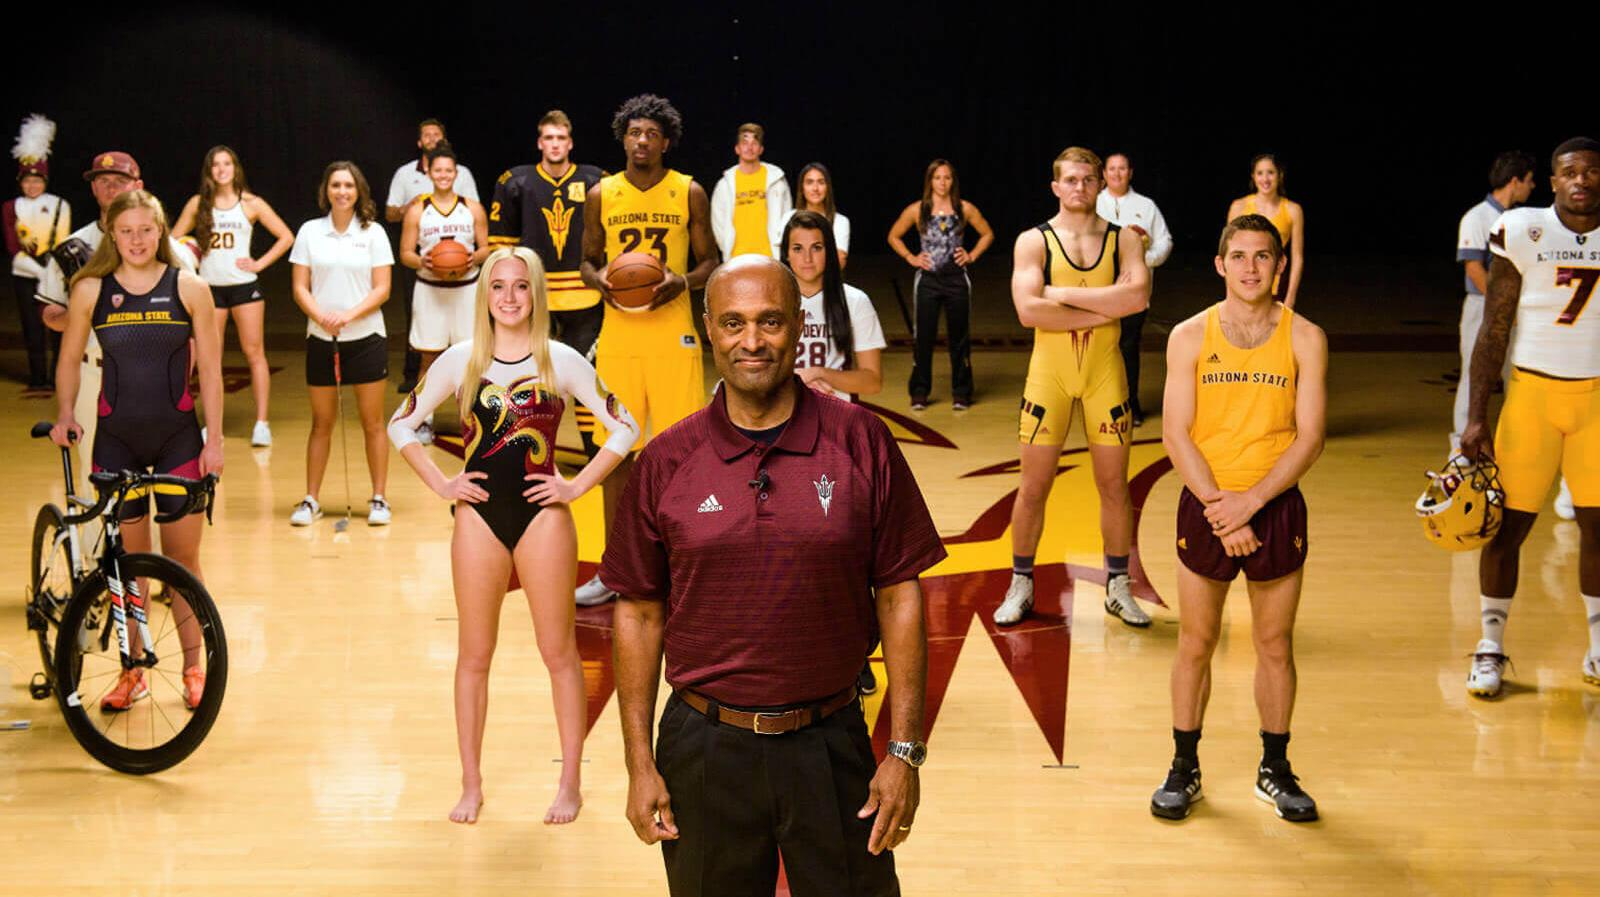 A variety of student athletes from different sports with a coach